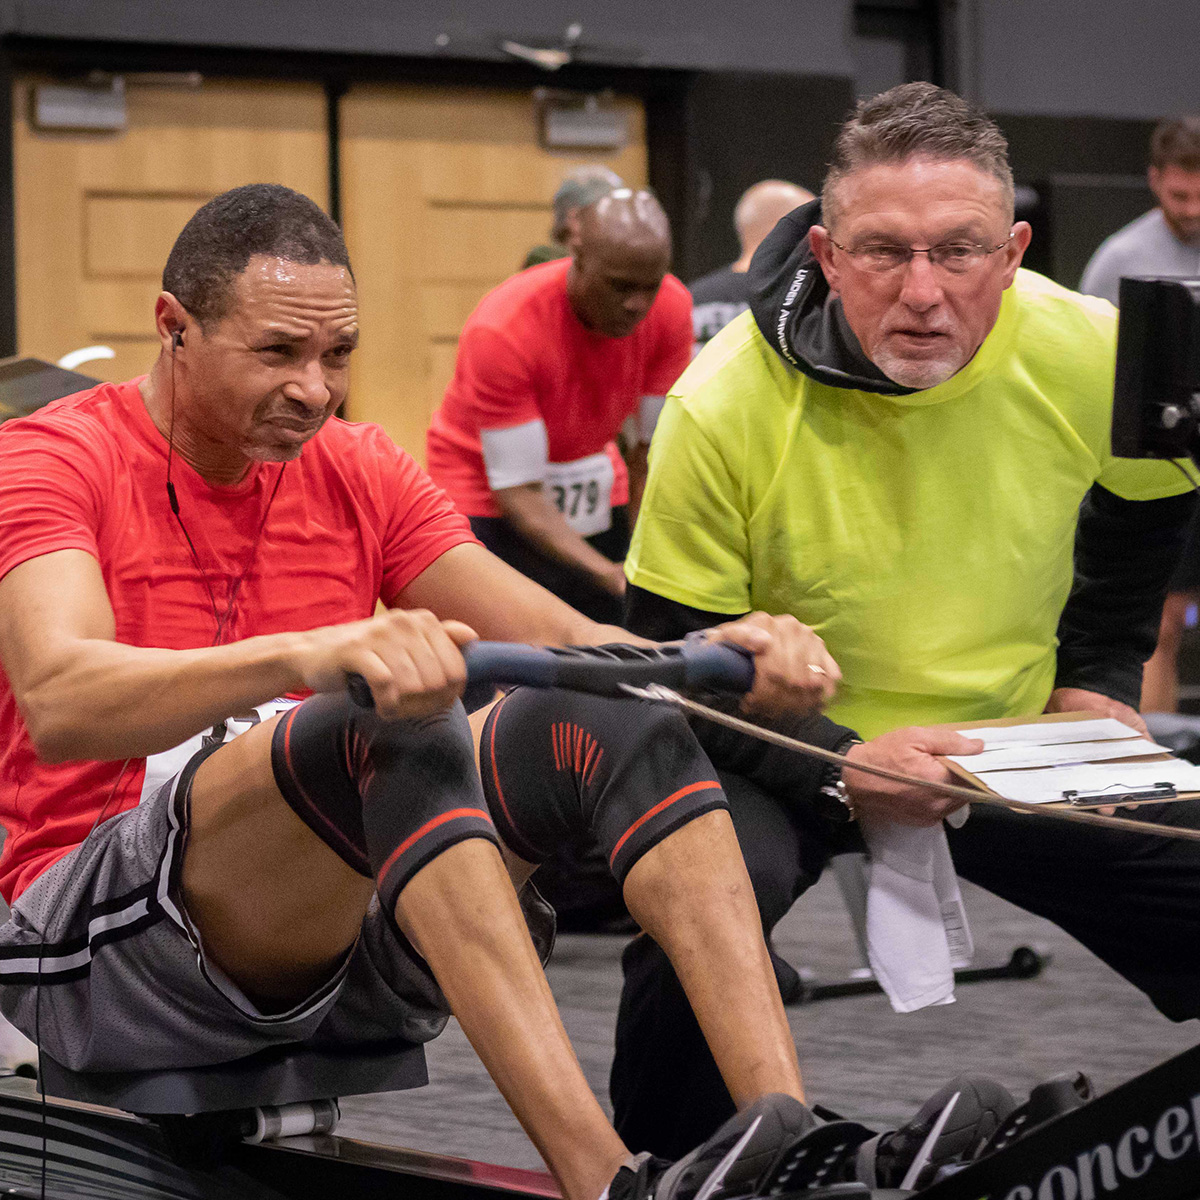 Kirkwood Fitness team captain Marcel Jackson competes in the rowing leg at the 2019 Delaware Charity Challenge winter indoor triathlon. Photo credit  Four Youth Productions .